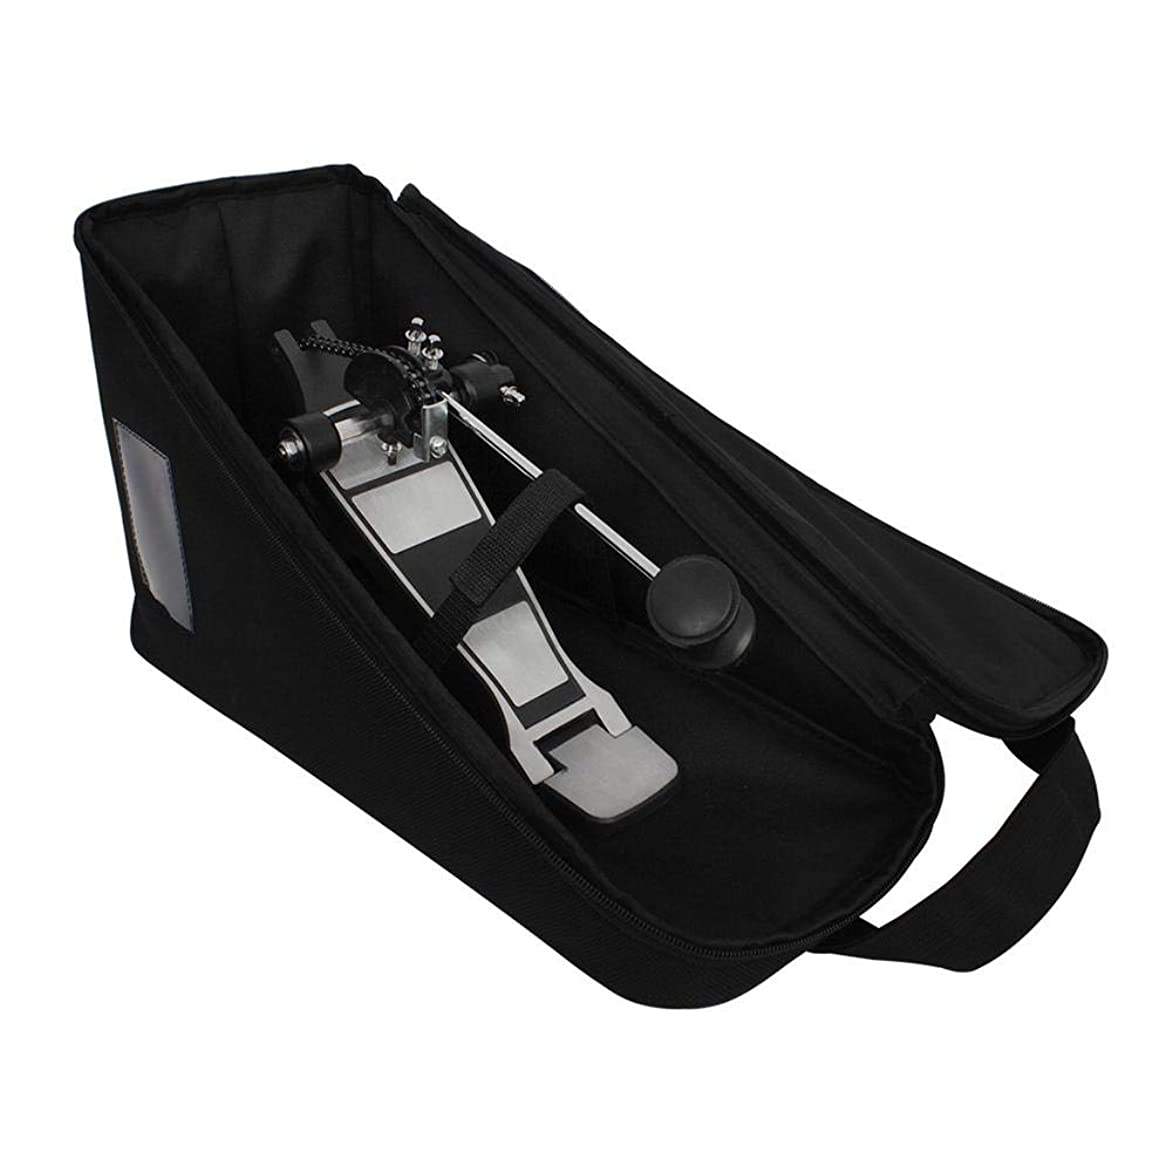 Huiying Bass Drum Single Pedal Pack Percussion Single Step Accessory Storage Bag Step Hammer Bag Bass Drum Single Pedal Carrying Bag Jazz Drum Percussion Accessories mnq903787207260